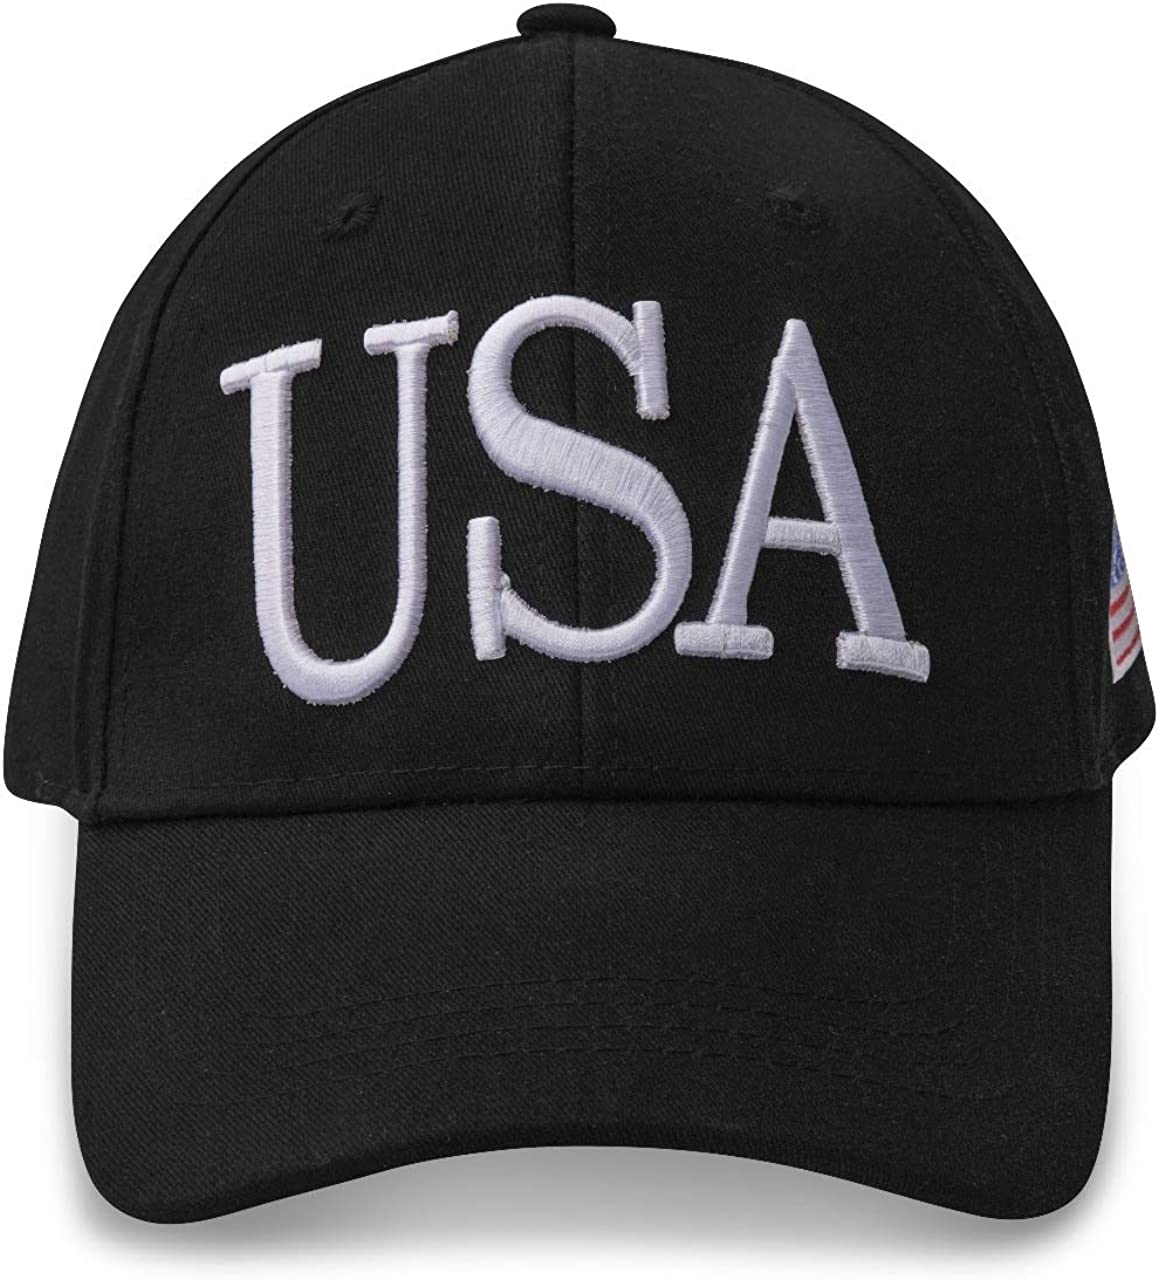 Shopers Variety USA Baseball Cap Polo Style Buckle Adjustable Embroidered Dad Hat American Flag for Men and Women Black